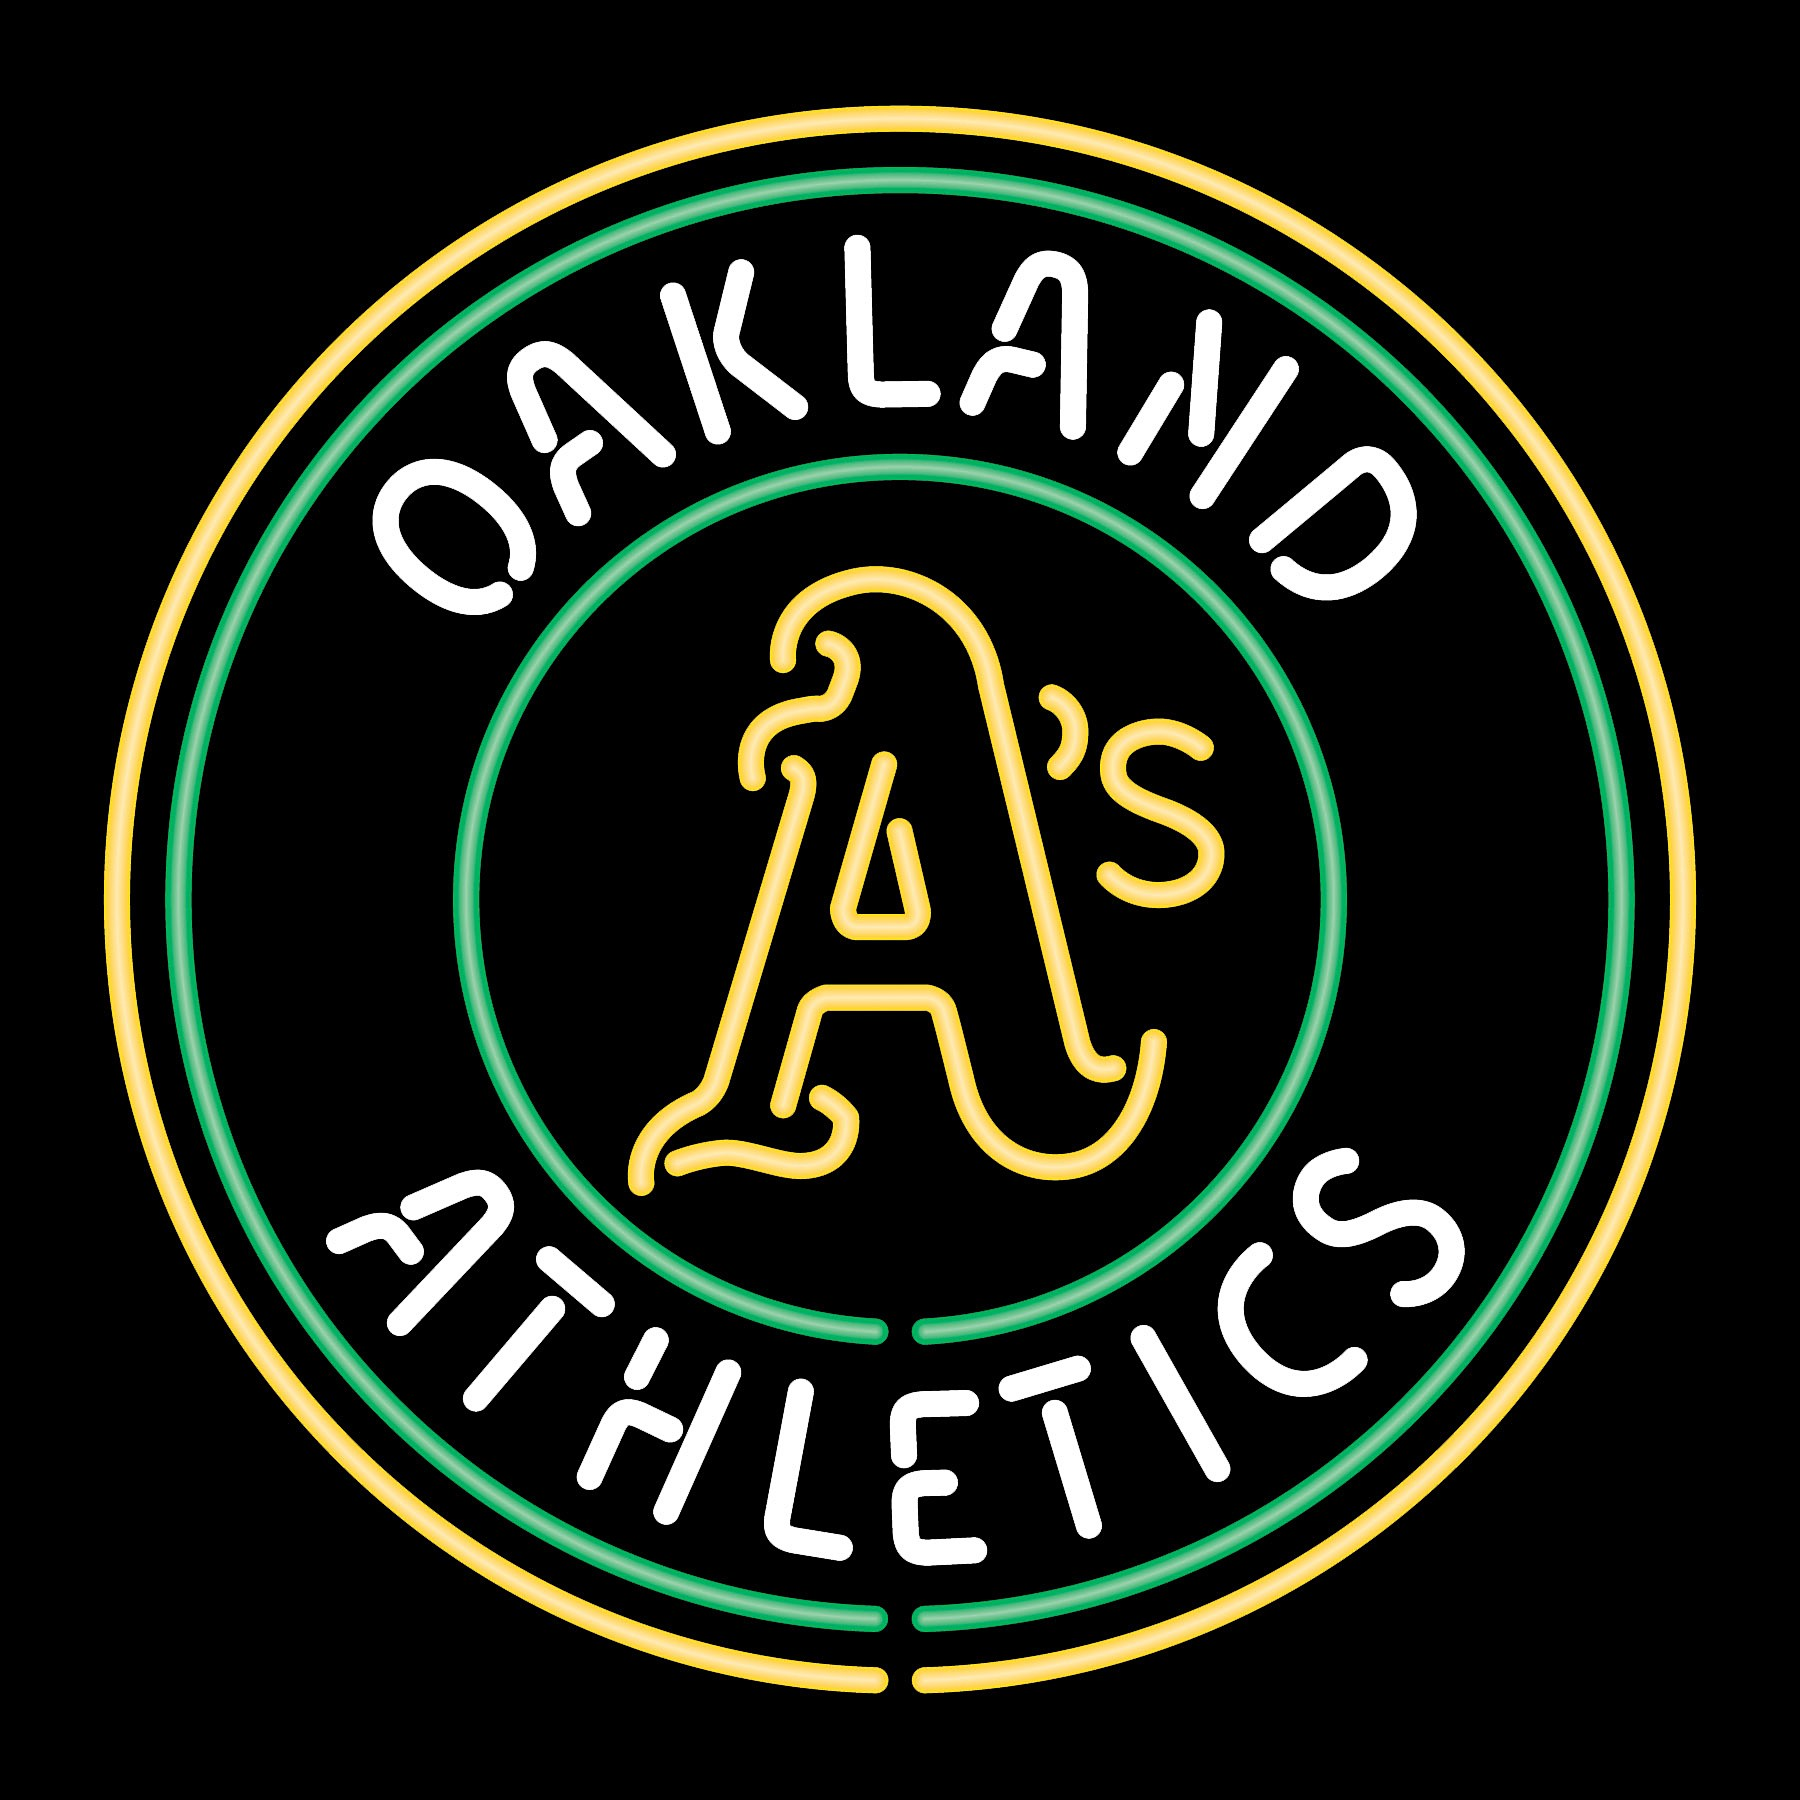 oakland athletics neon signjpg 1800x1800